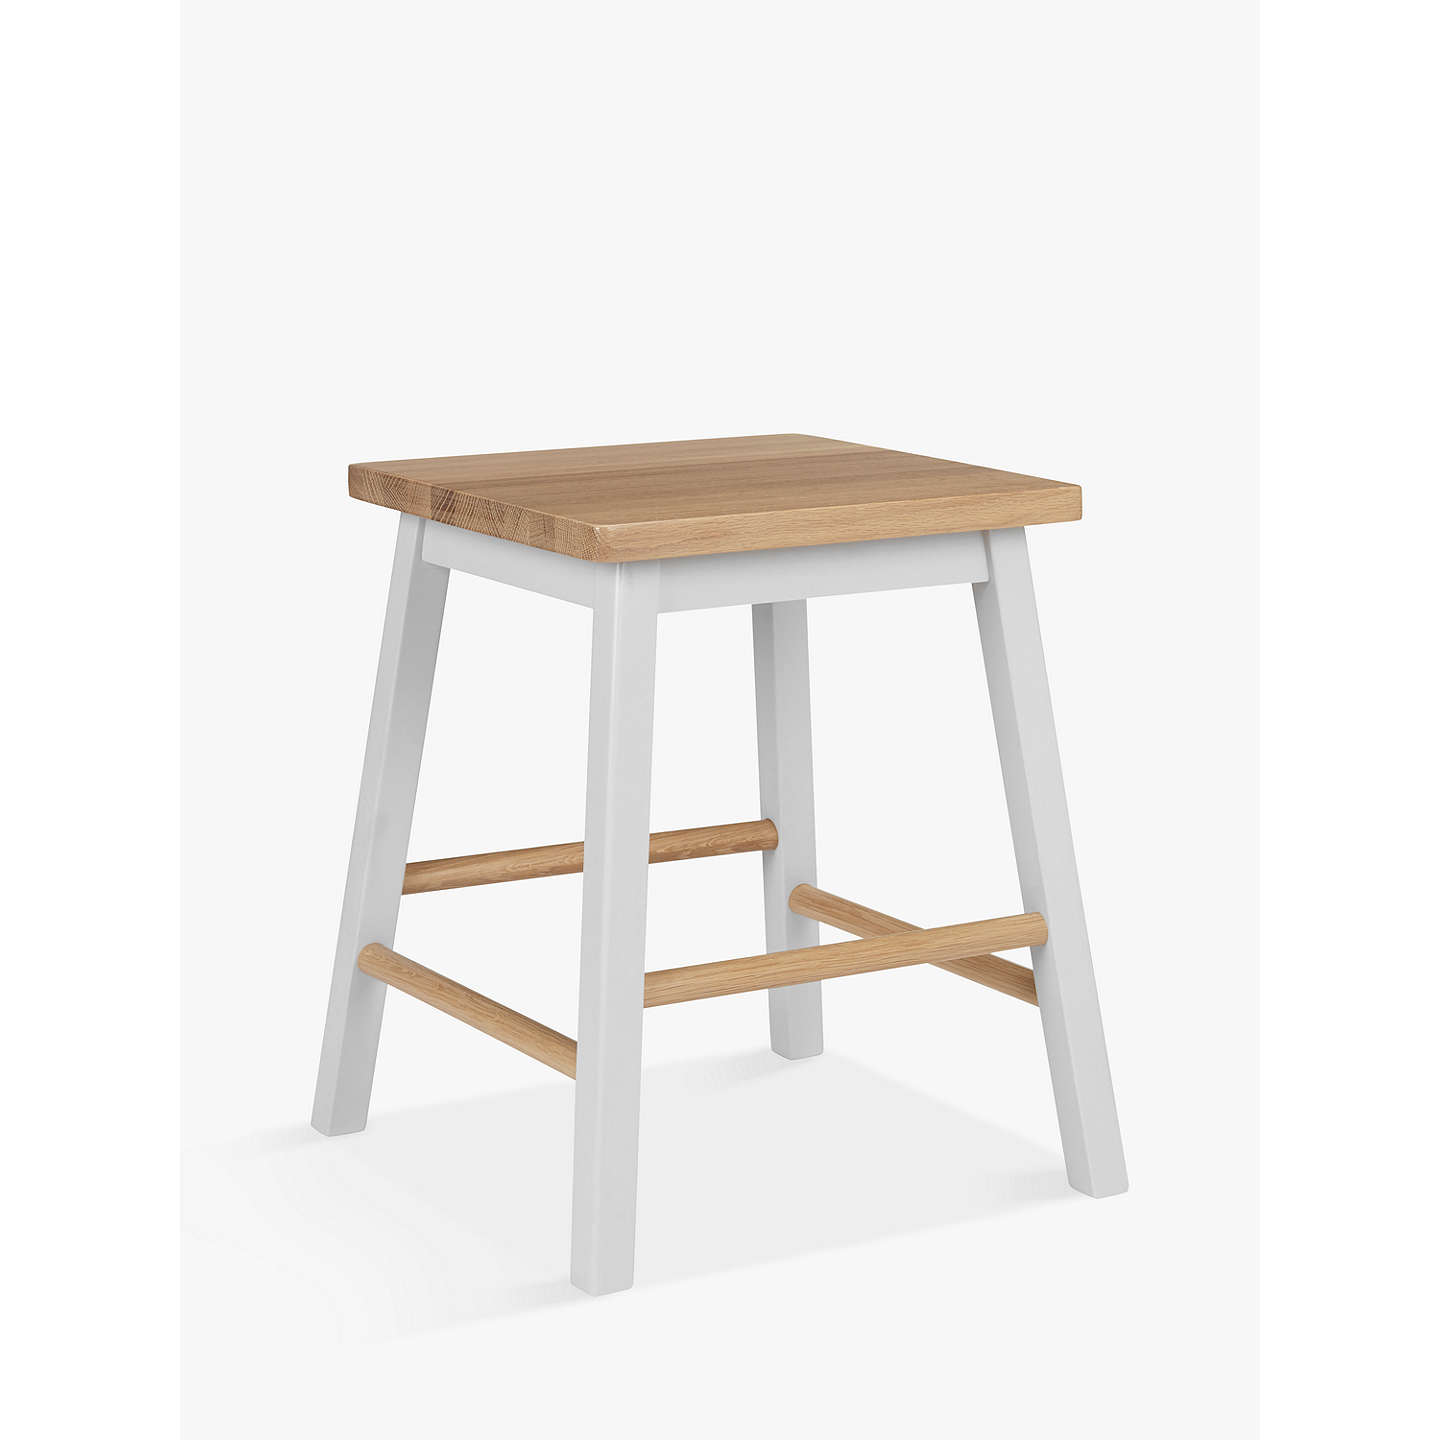 Kitchen Stools At John Lewis: Croft Collection Blakeney Bathroom Stool. Light Silver At